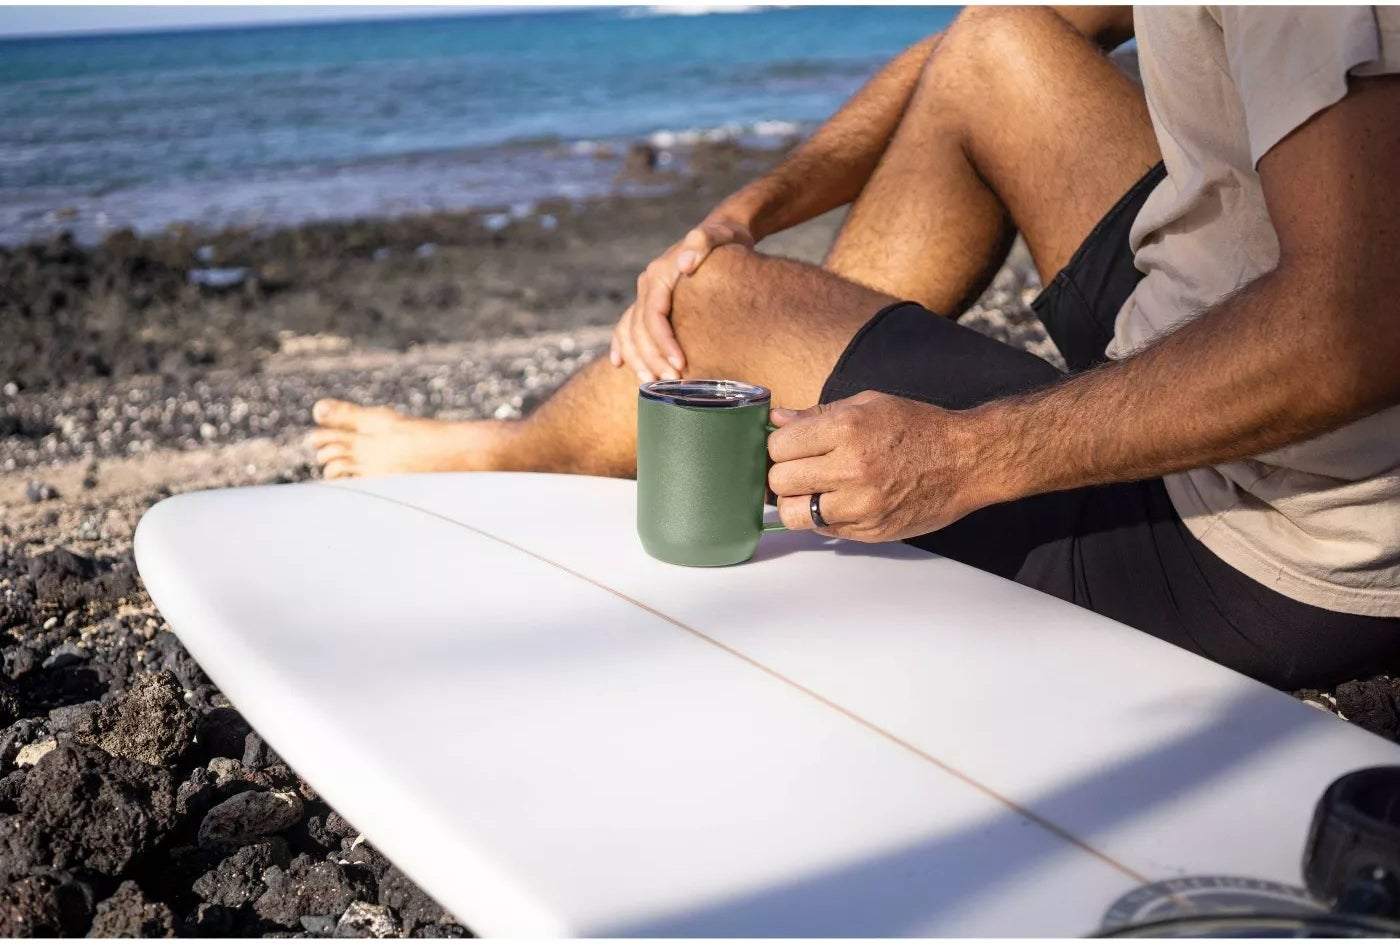 The green mug is in an adult's hand and is resting on a surfboard with a body of water in the background